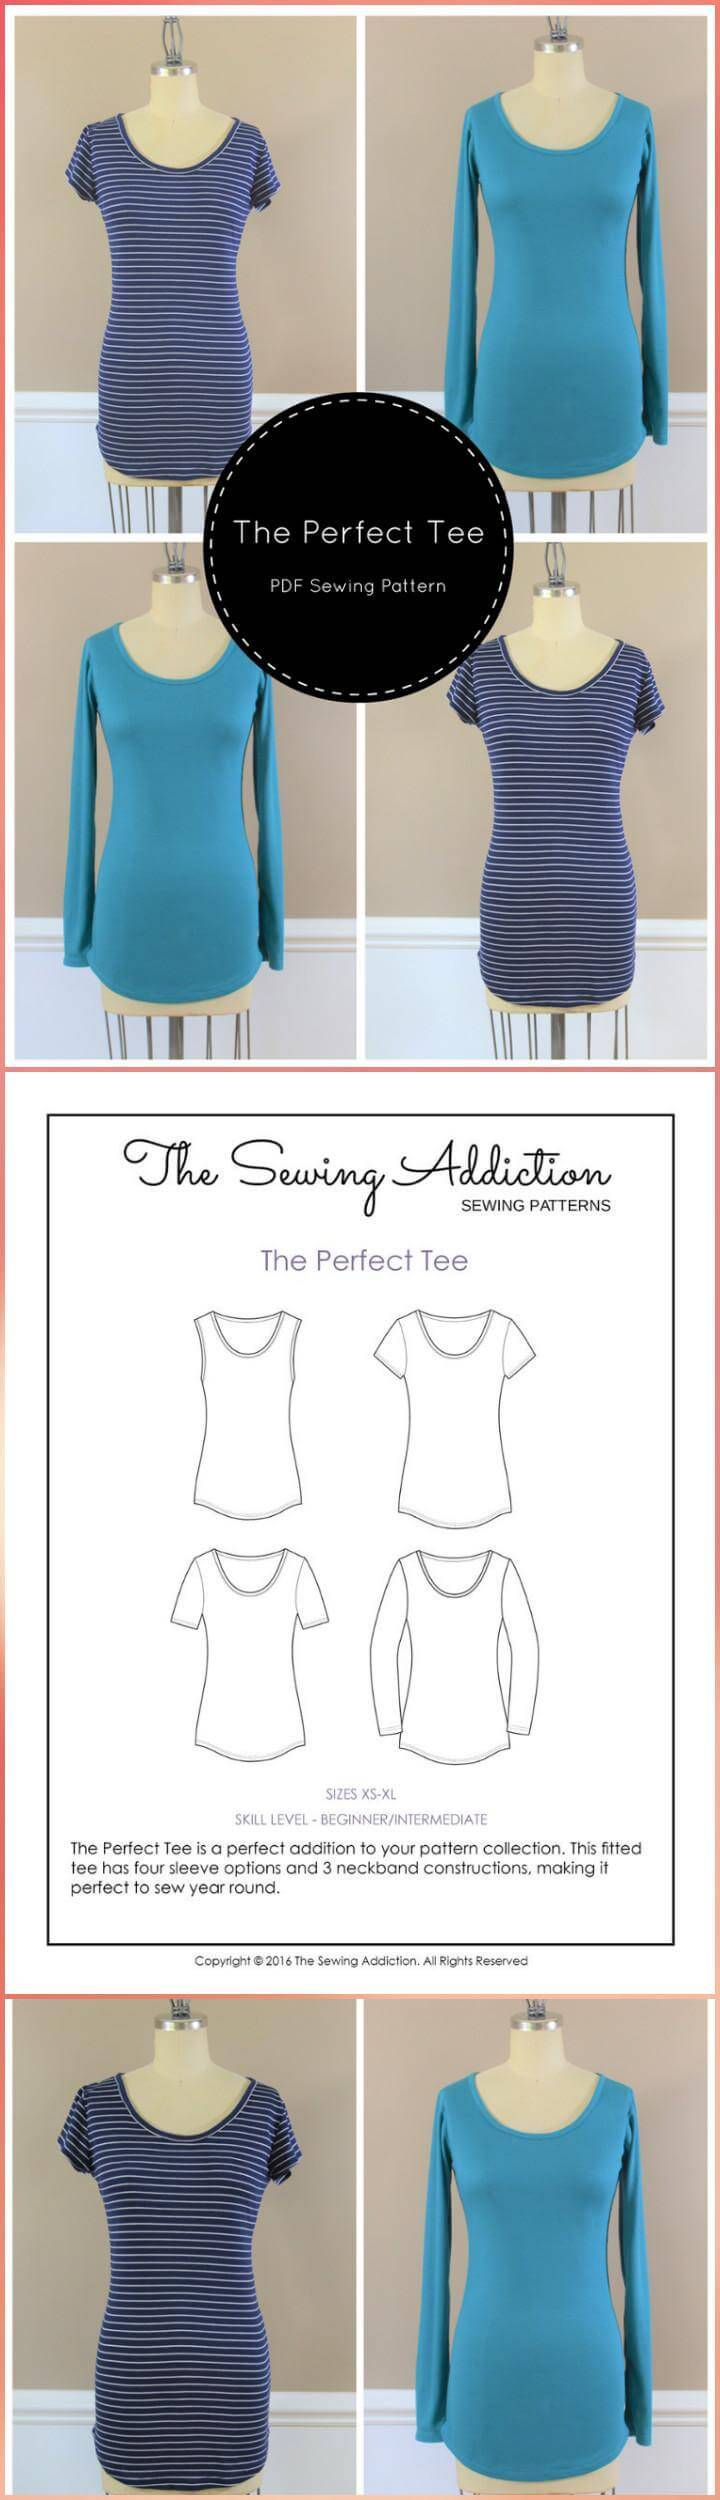 DIY perfect tee free pattern